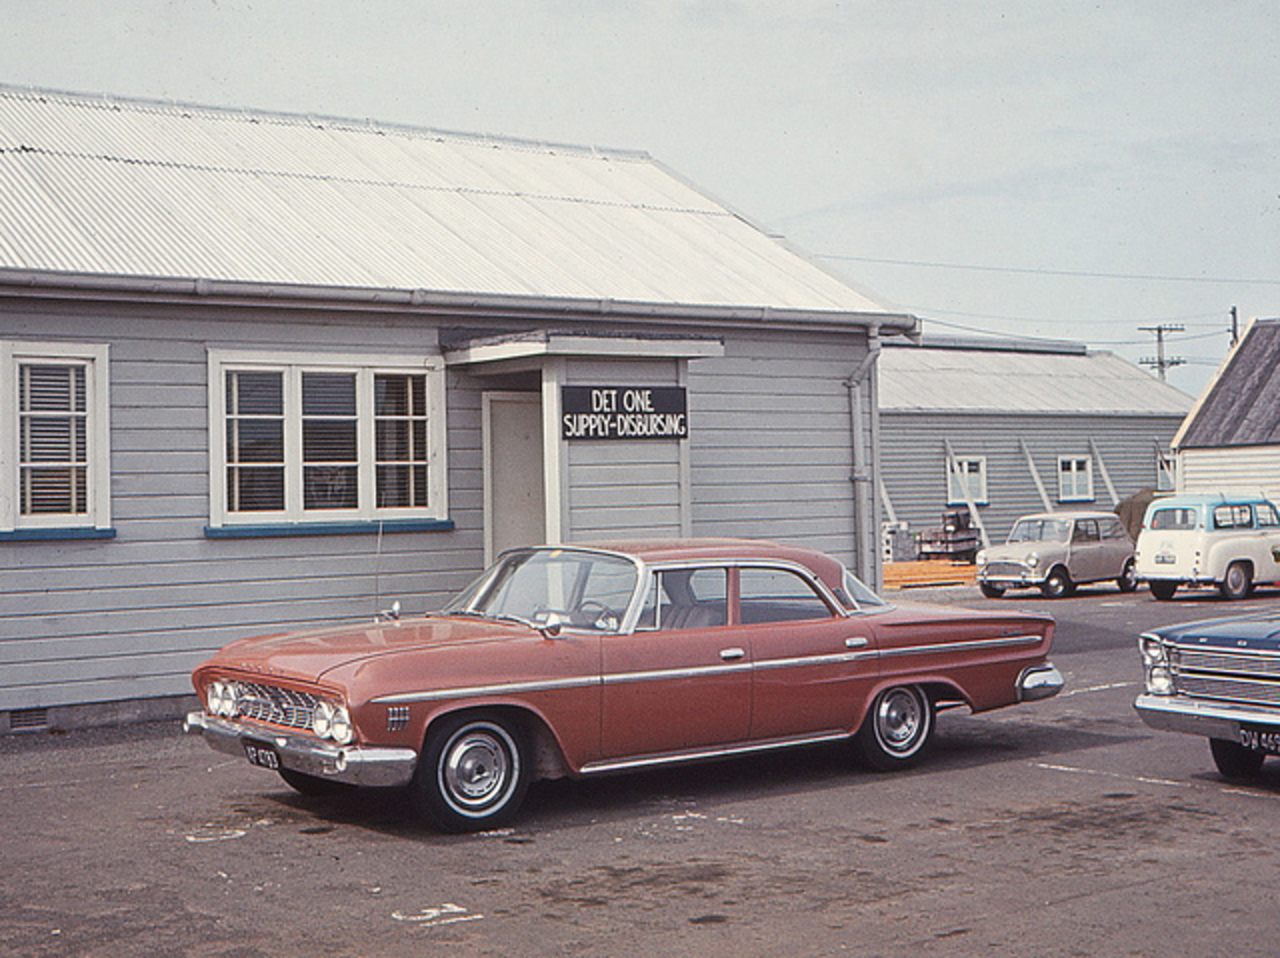 1962 Dodge Custom 880 4 door Sedan | Flickr - Photo Sharing!